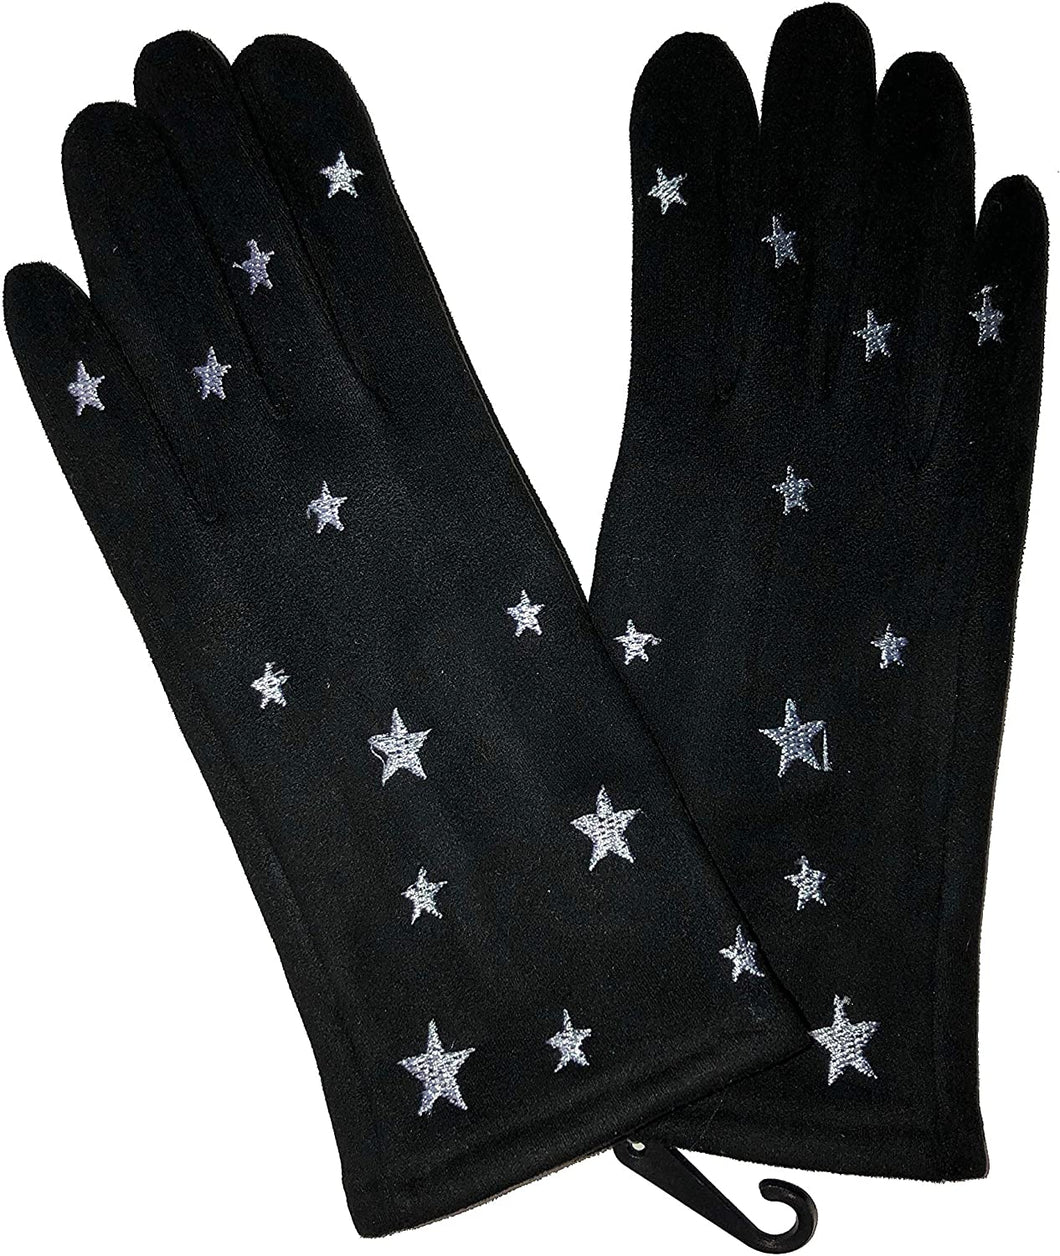 G1908 Very stylish Ladies gloves with white embroidered stars, great present/gift.